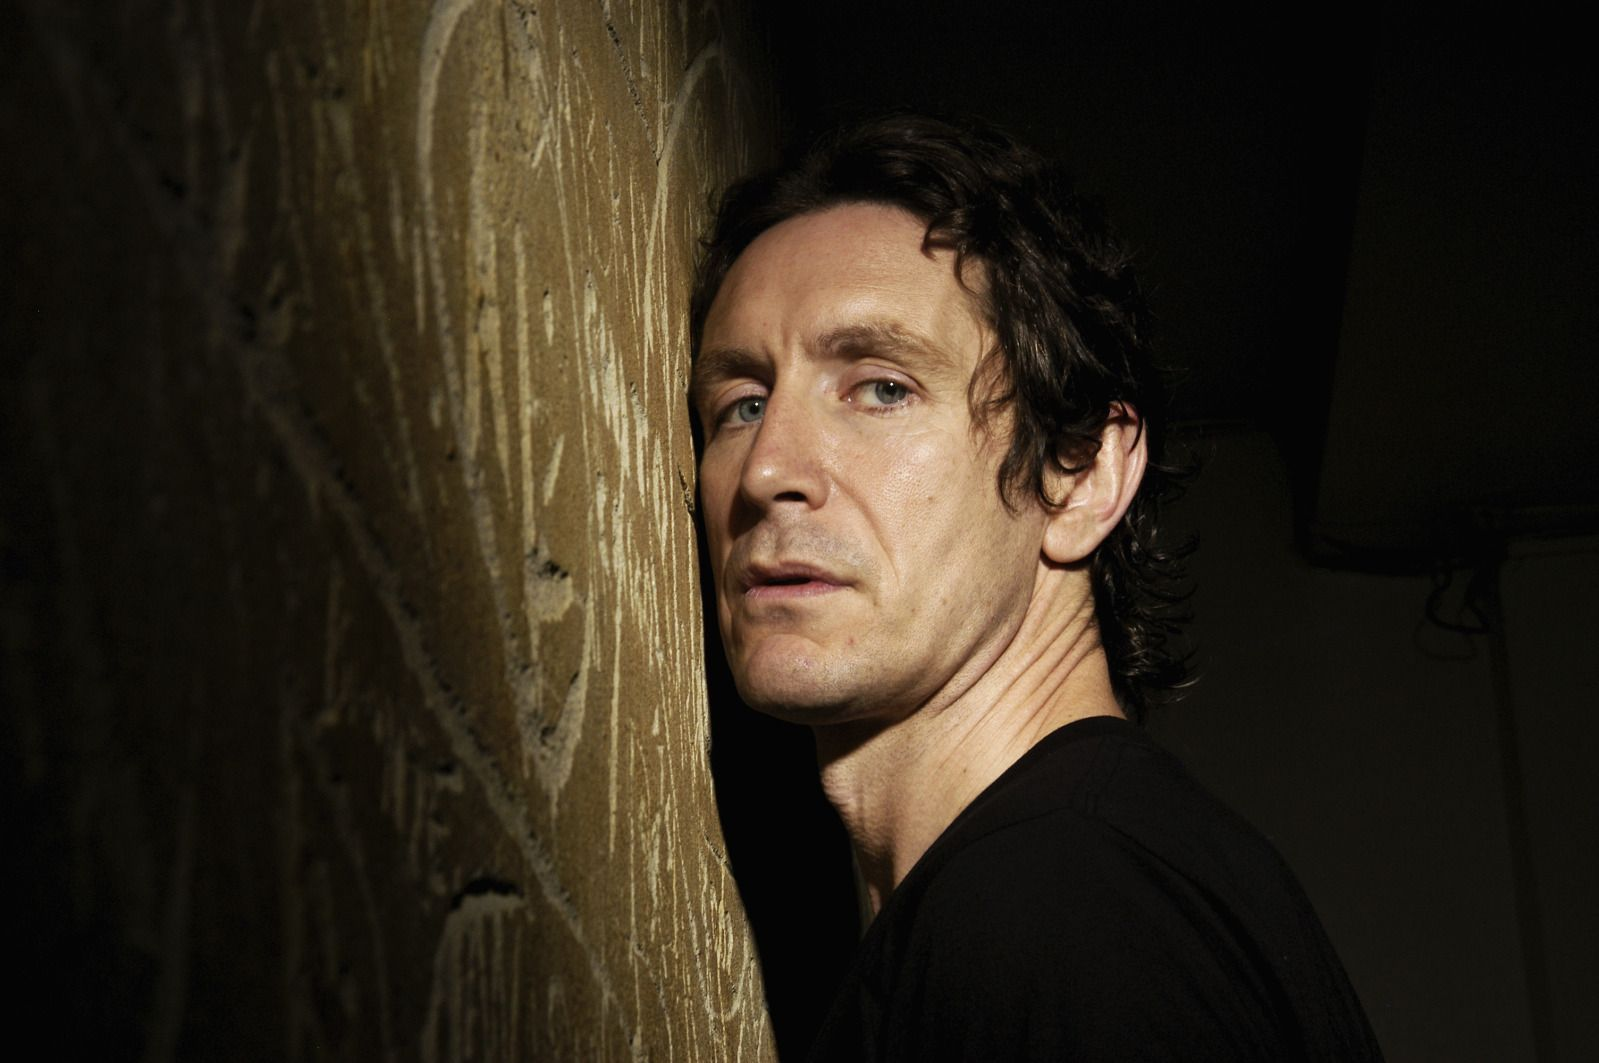 paul mcgann theatre